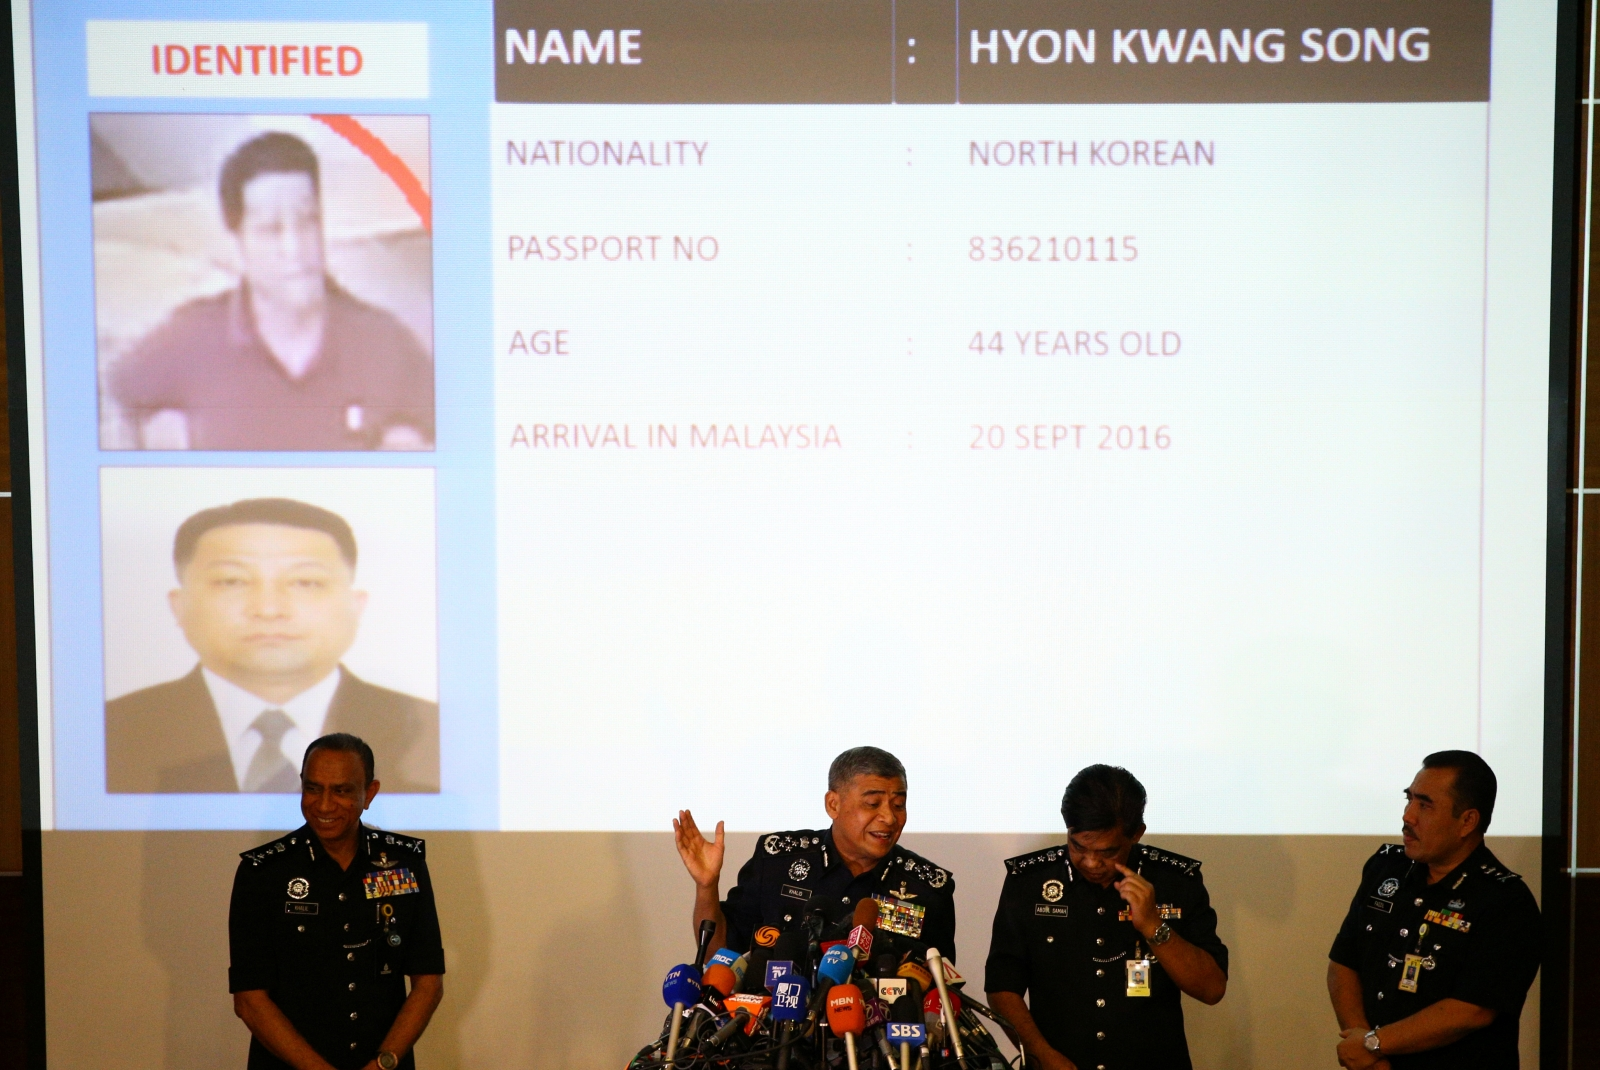 Kim Jong-nam assassination